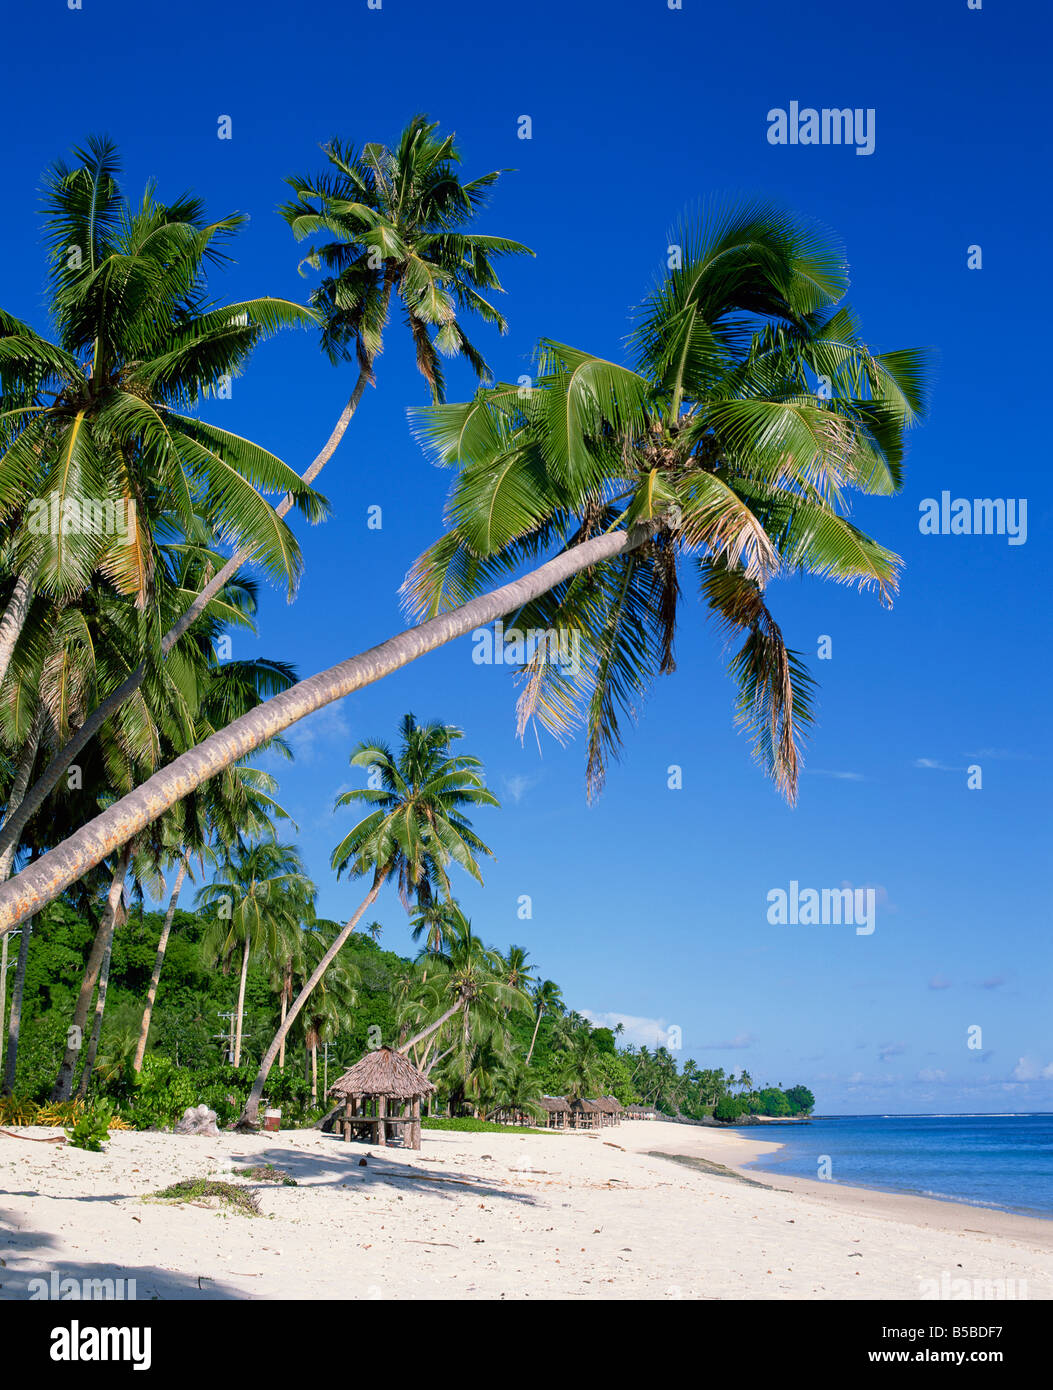 Palm trees and tropical beach at Lalamanu near Vavau Western Samoa Pacific Islands Pacific - Stock Image